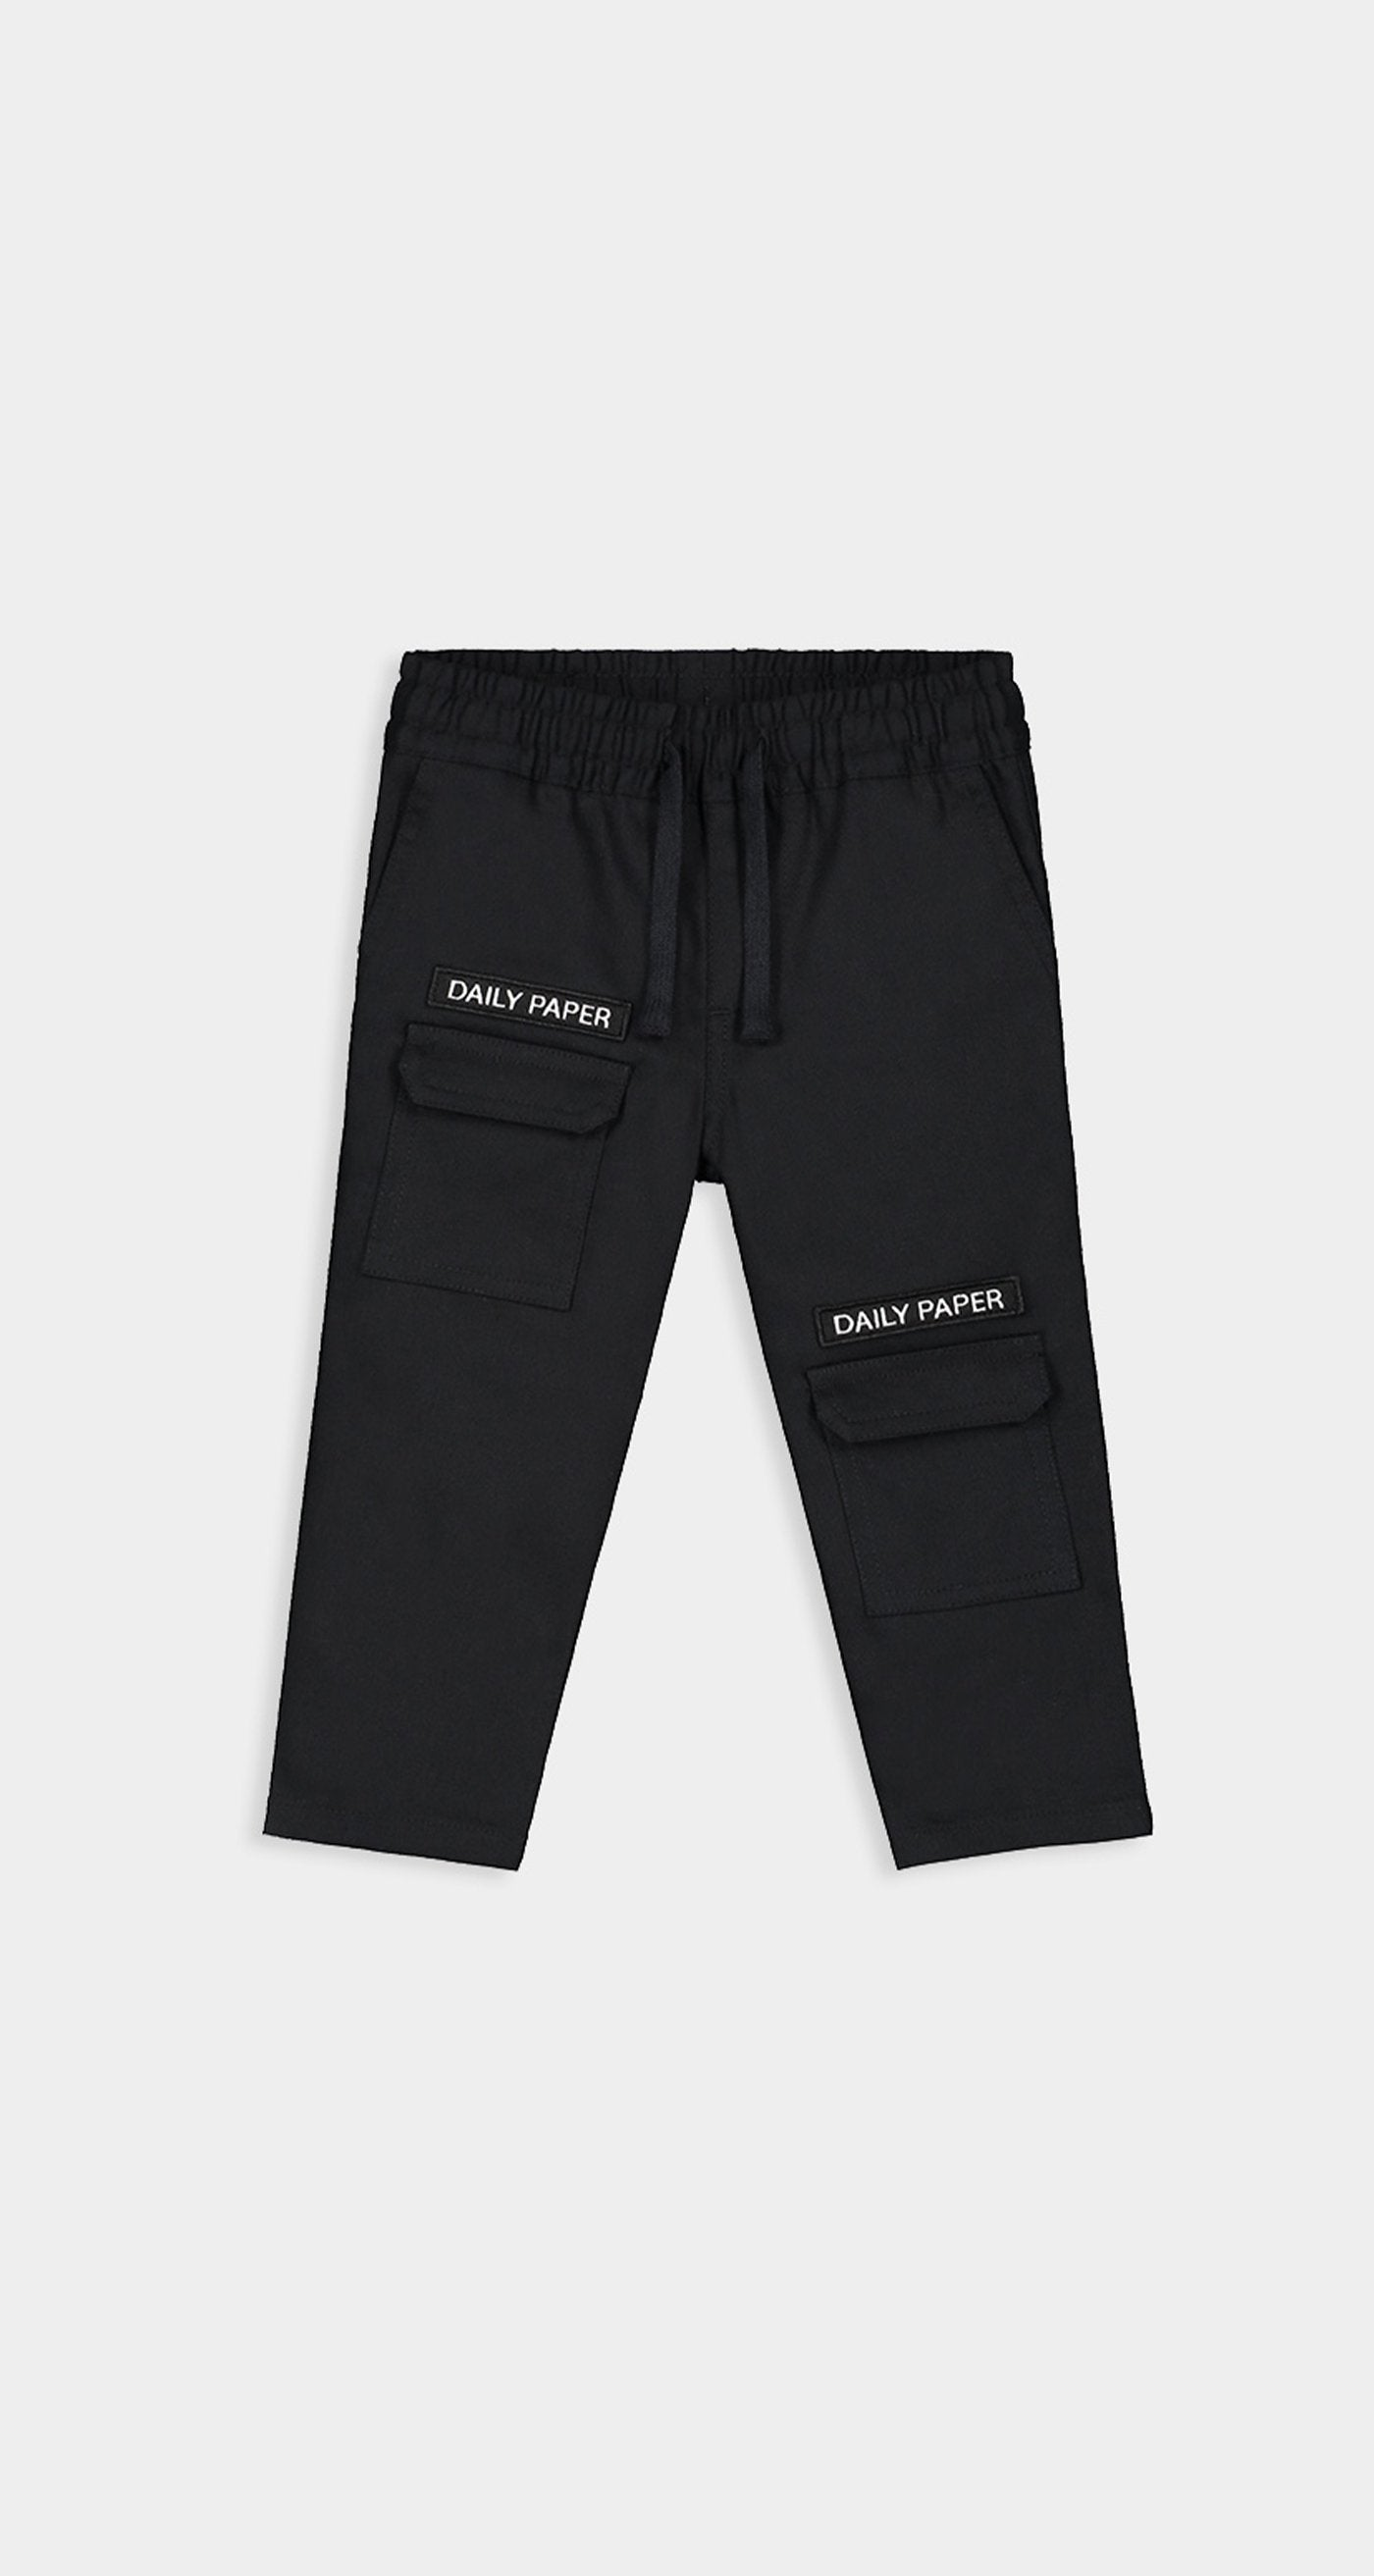 Daily Paper - Black Kids Cargo Shorts Front